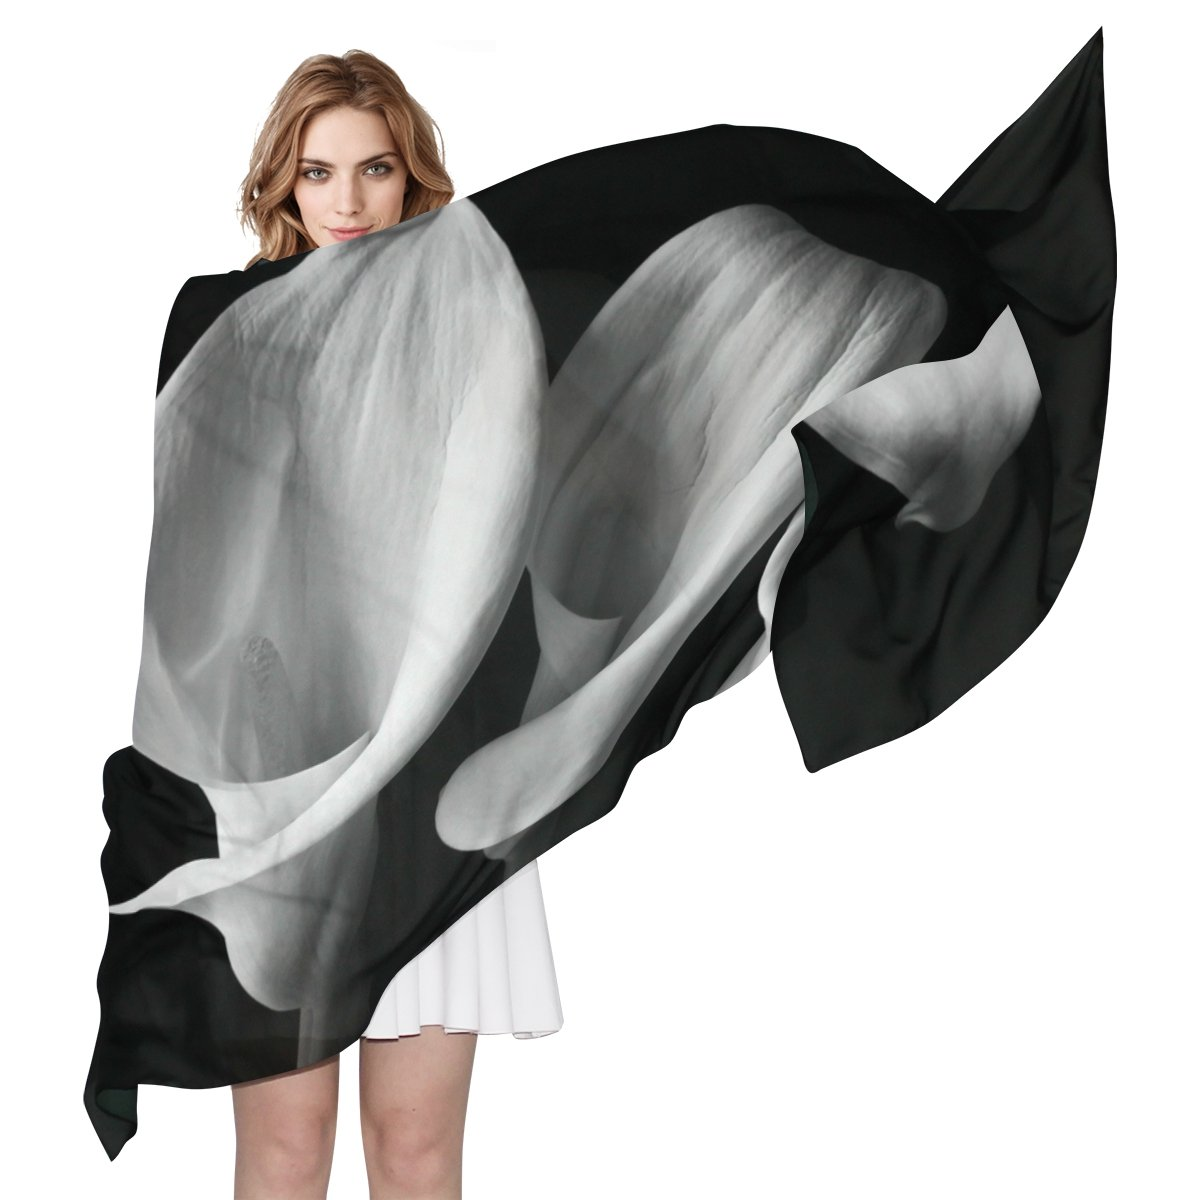 WDYSECRET Black And White Calla Lily Silk Printing Scarves for Women 70.86x35.4(in) by WDYSECRET